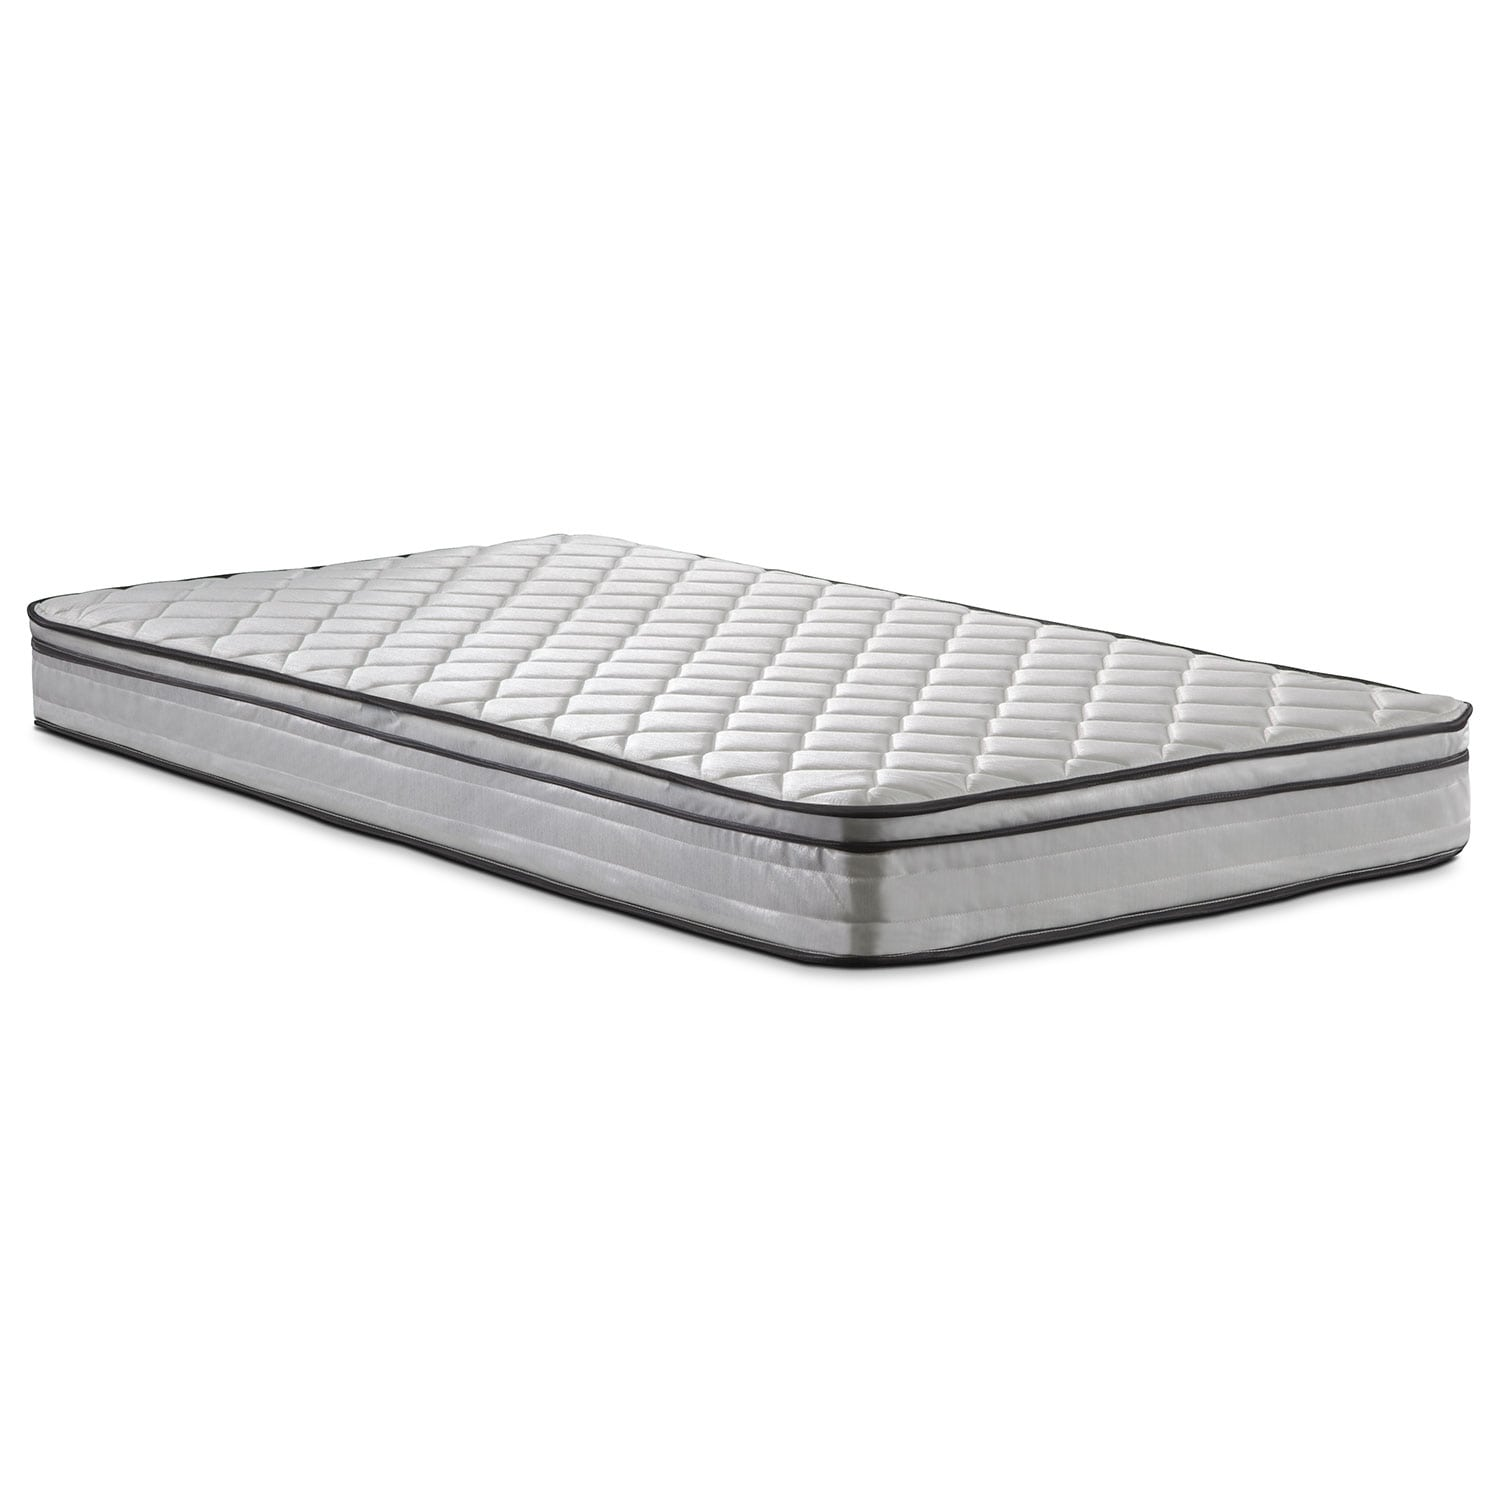 Mattresses and Bedding - Mirage Full Mattress